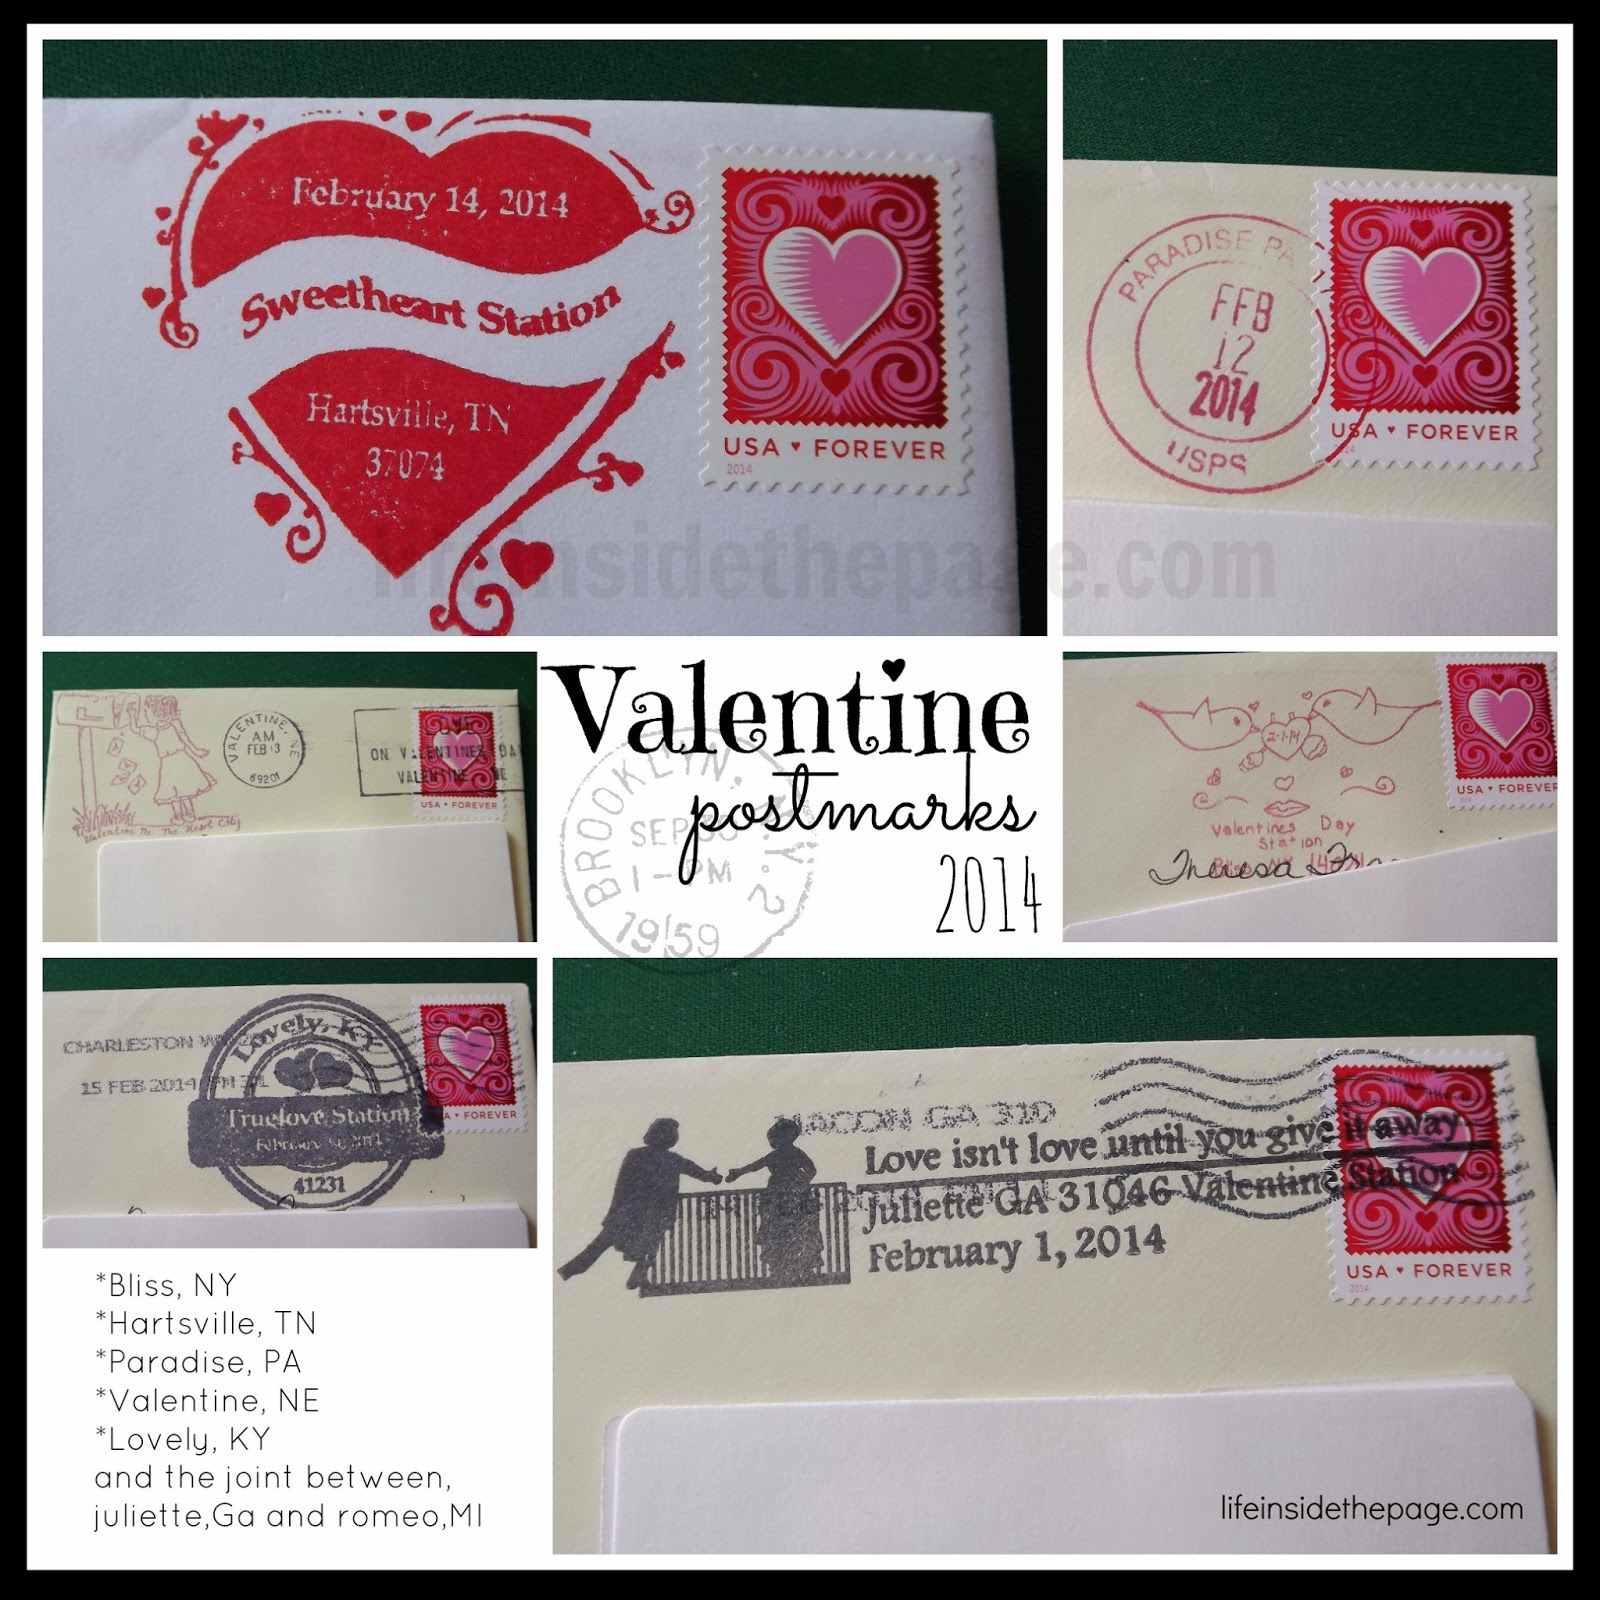 US Postal Service | Valentines Day| Special city cancellations | 2014